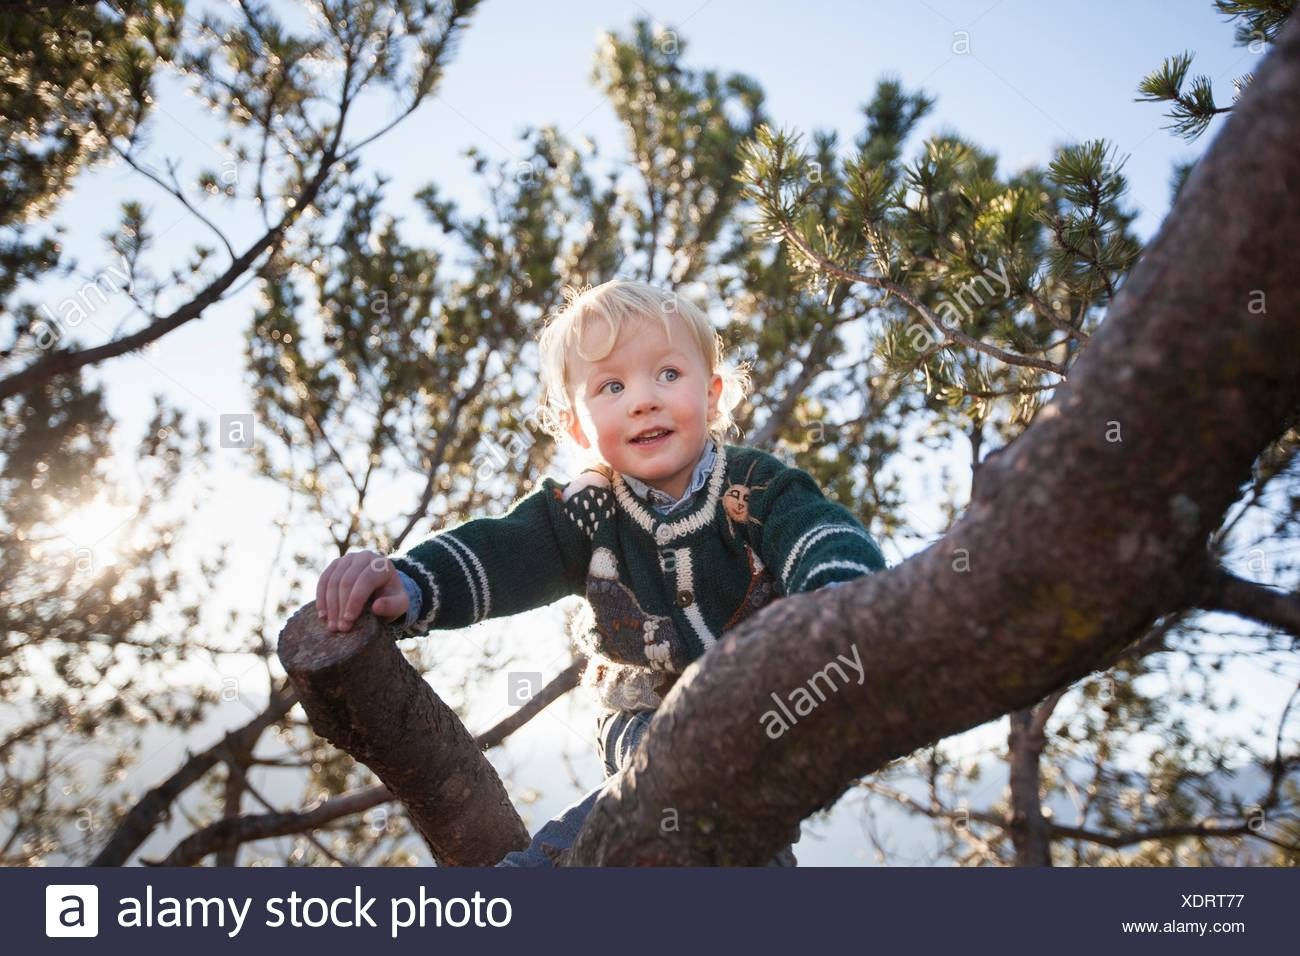 Happy female toddler climbing tree in forest - Stock Image